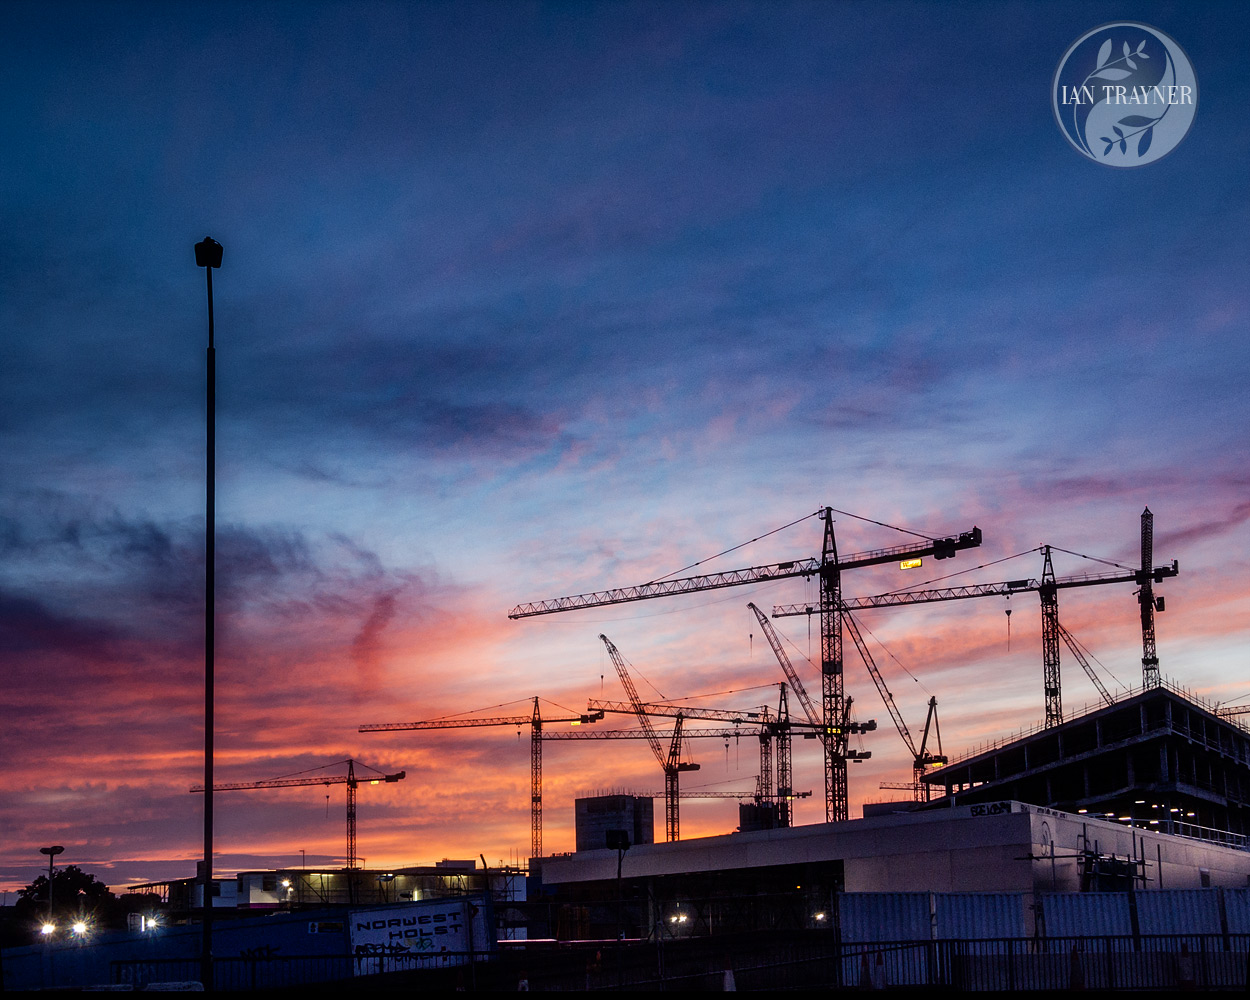 Dramatic sunset during construction of the Westfield London shopping centre in 2007. Photo by Ian Trayner.